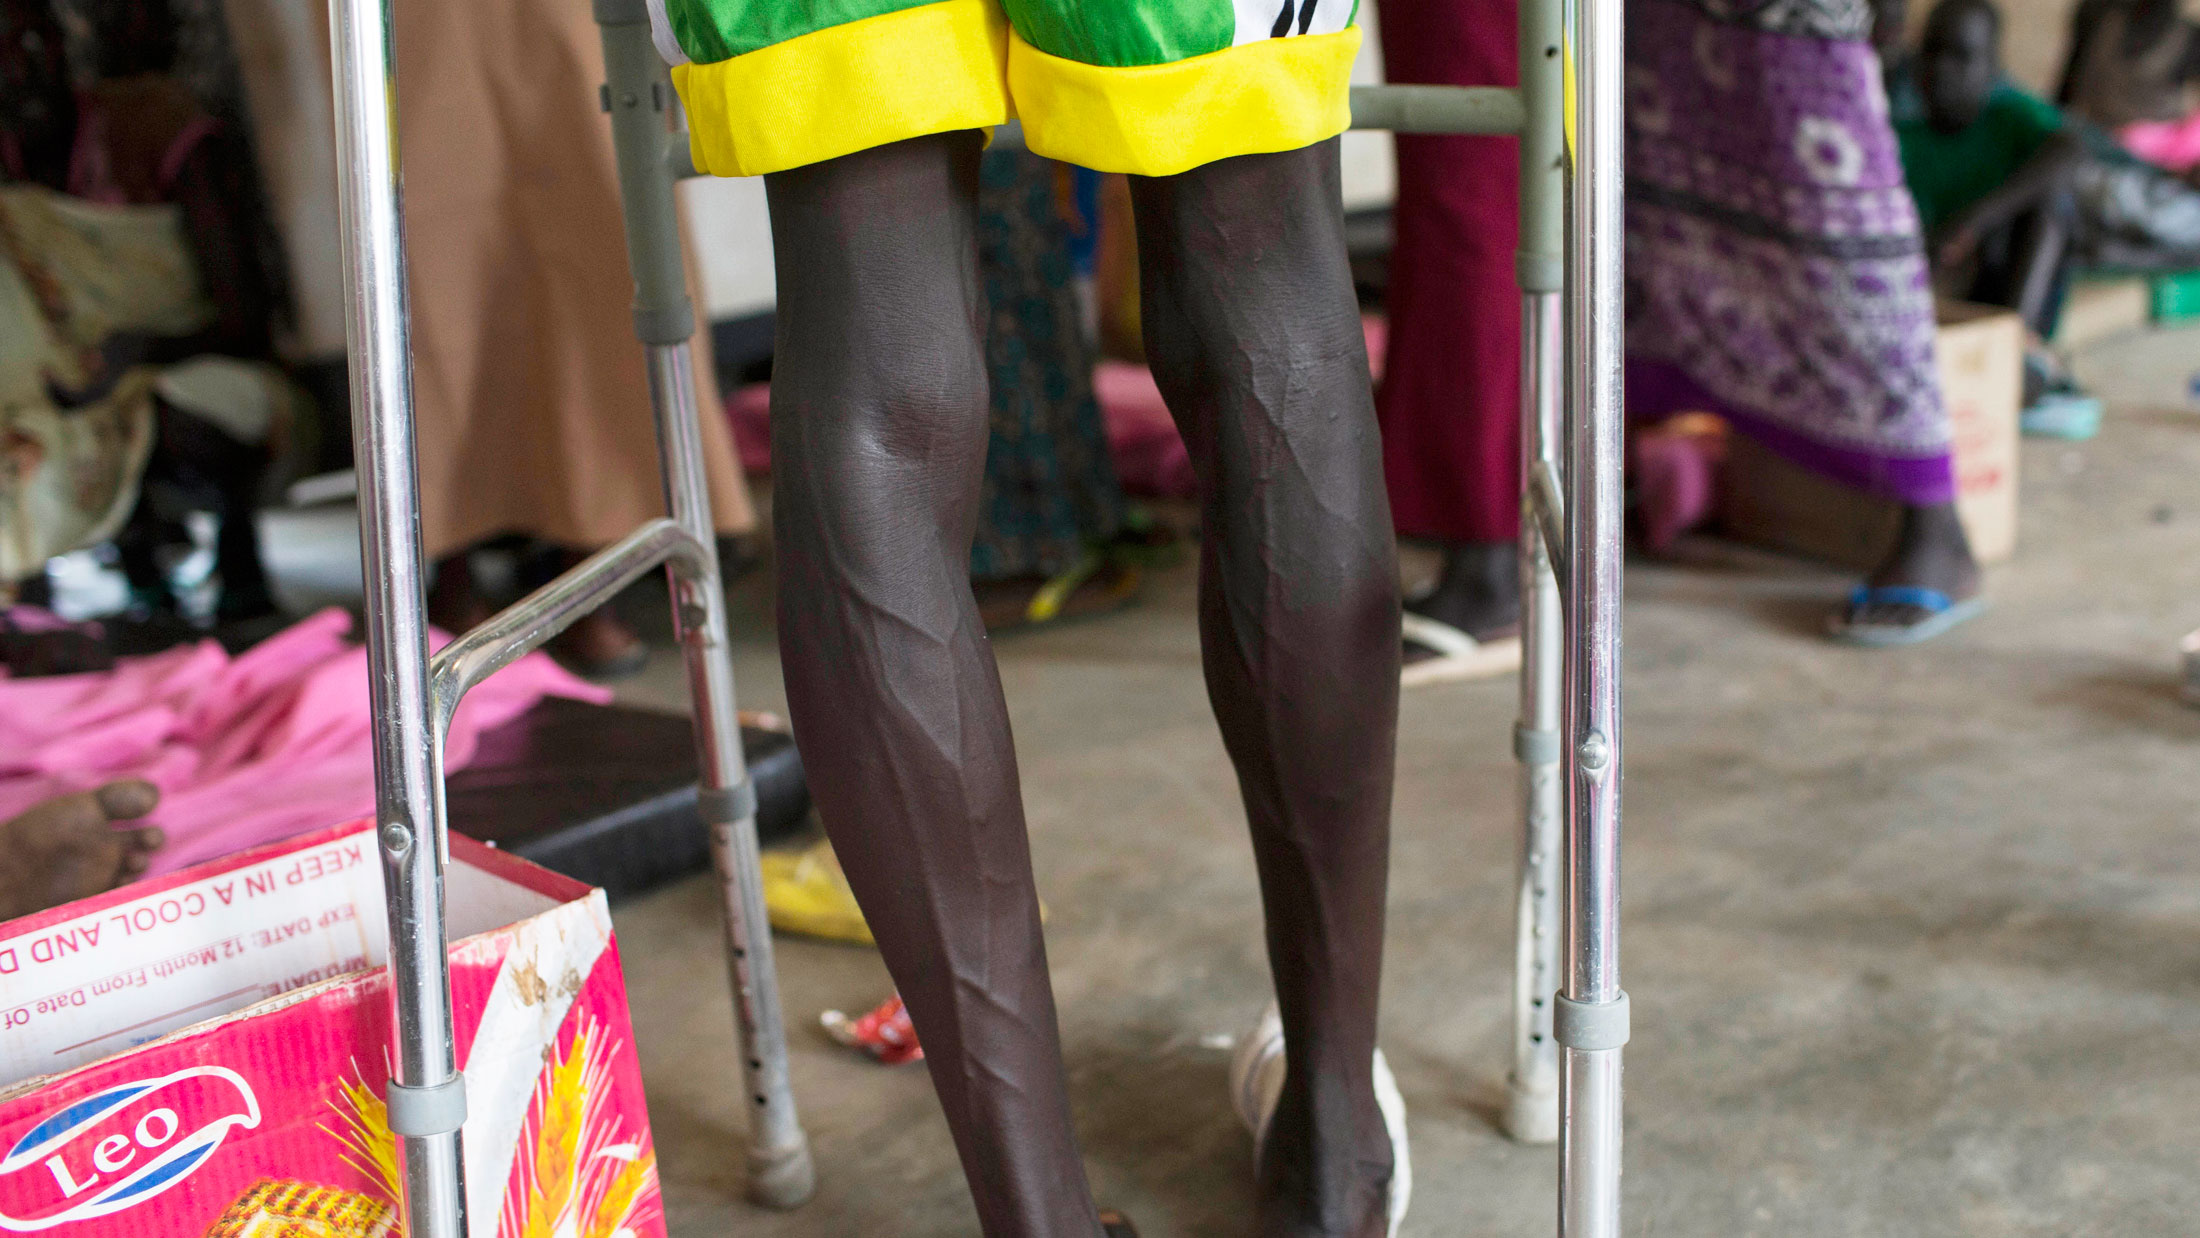 A Lou Nuer youth uses a walking aid to limp through a hospital ward in Bor hospital, Bor town, Jonglei State, South Sudan, Monday, July 15, 2103. Fierce clashes between rival ethnic groups have again erupted in eastern Jonglei state, causing 144 wounded t